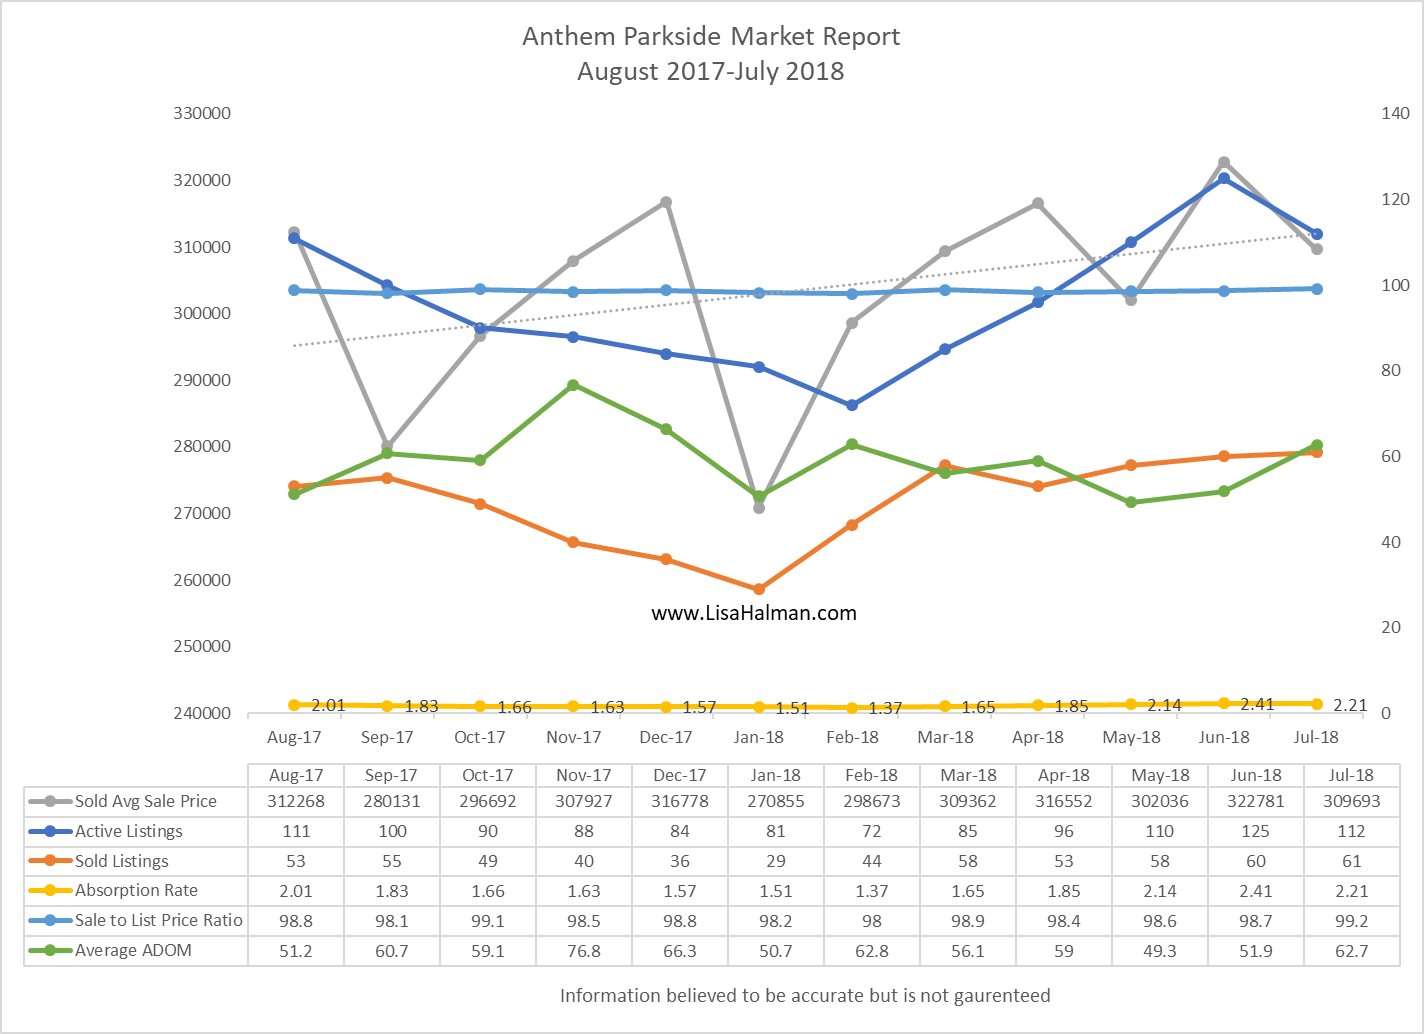 Anthem Parkside Market Update July 2018